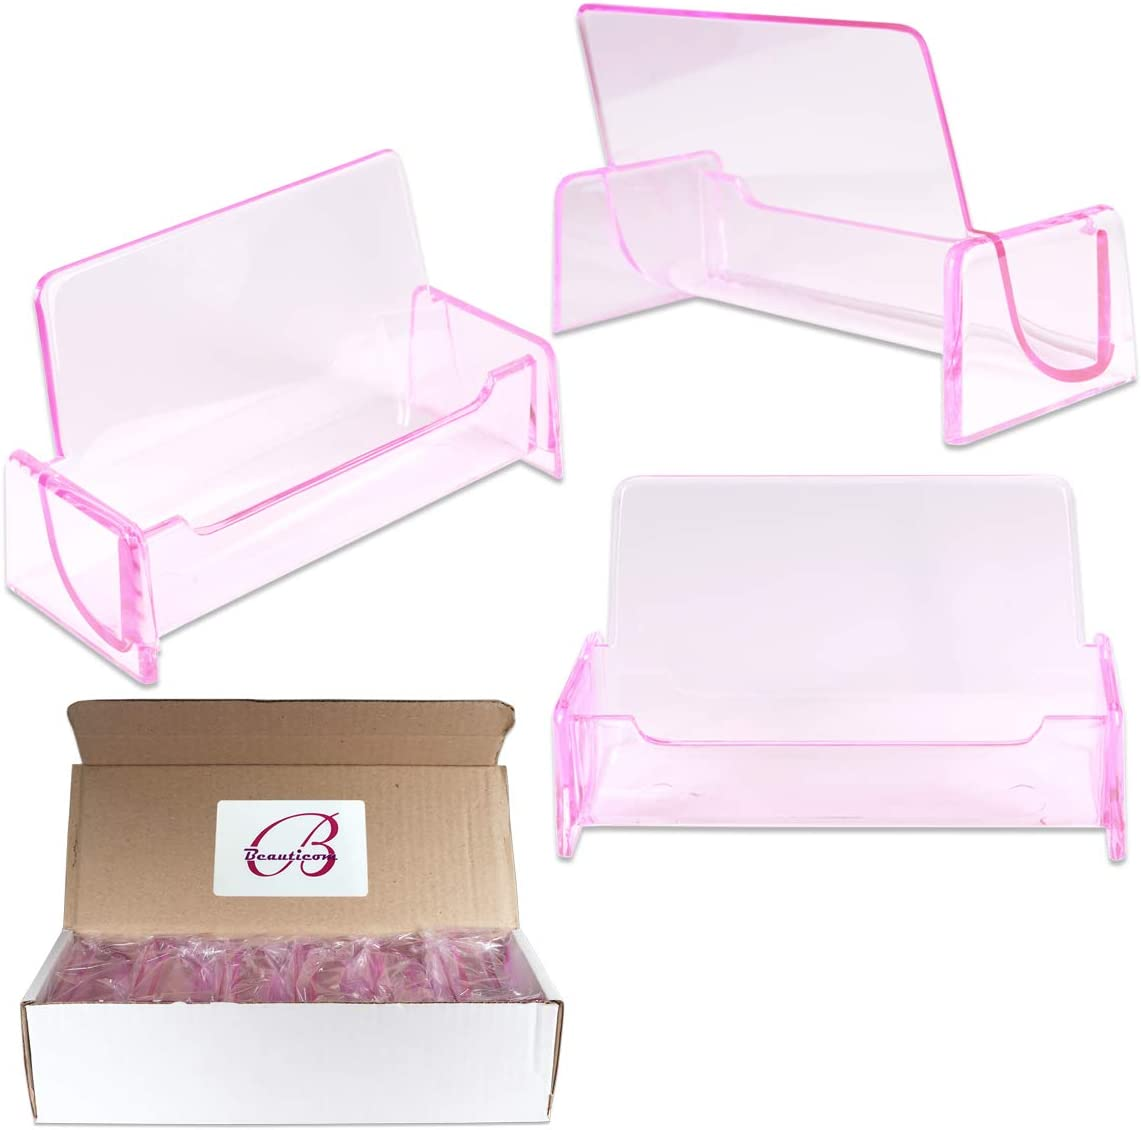 Beauticom 12 Pieces - Clear Color Plastic Business Card Holder Display Desktop Countertop (Style # 3) (Clear Pink)